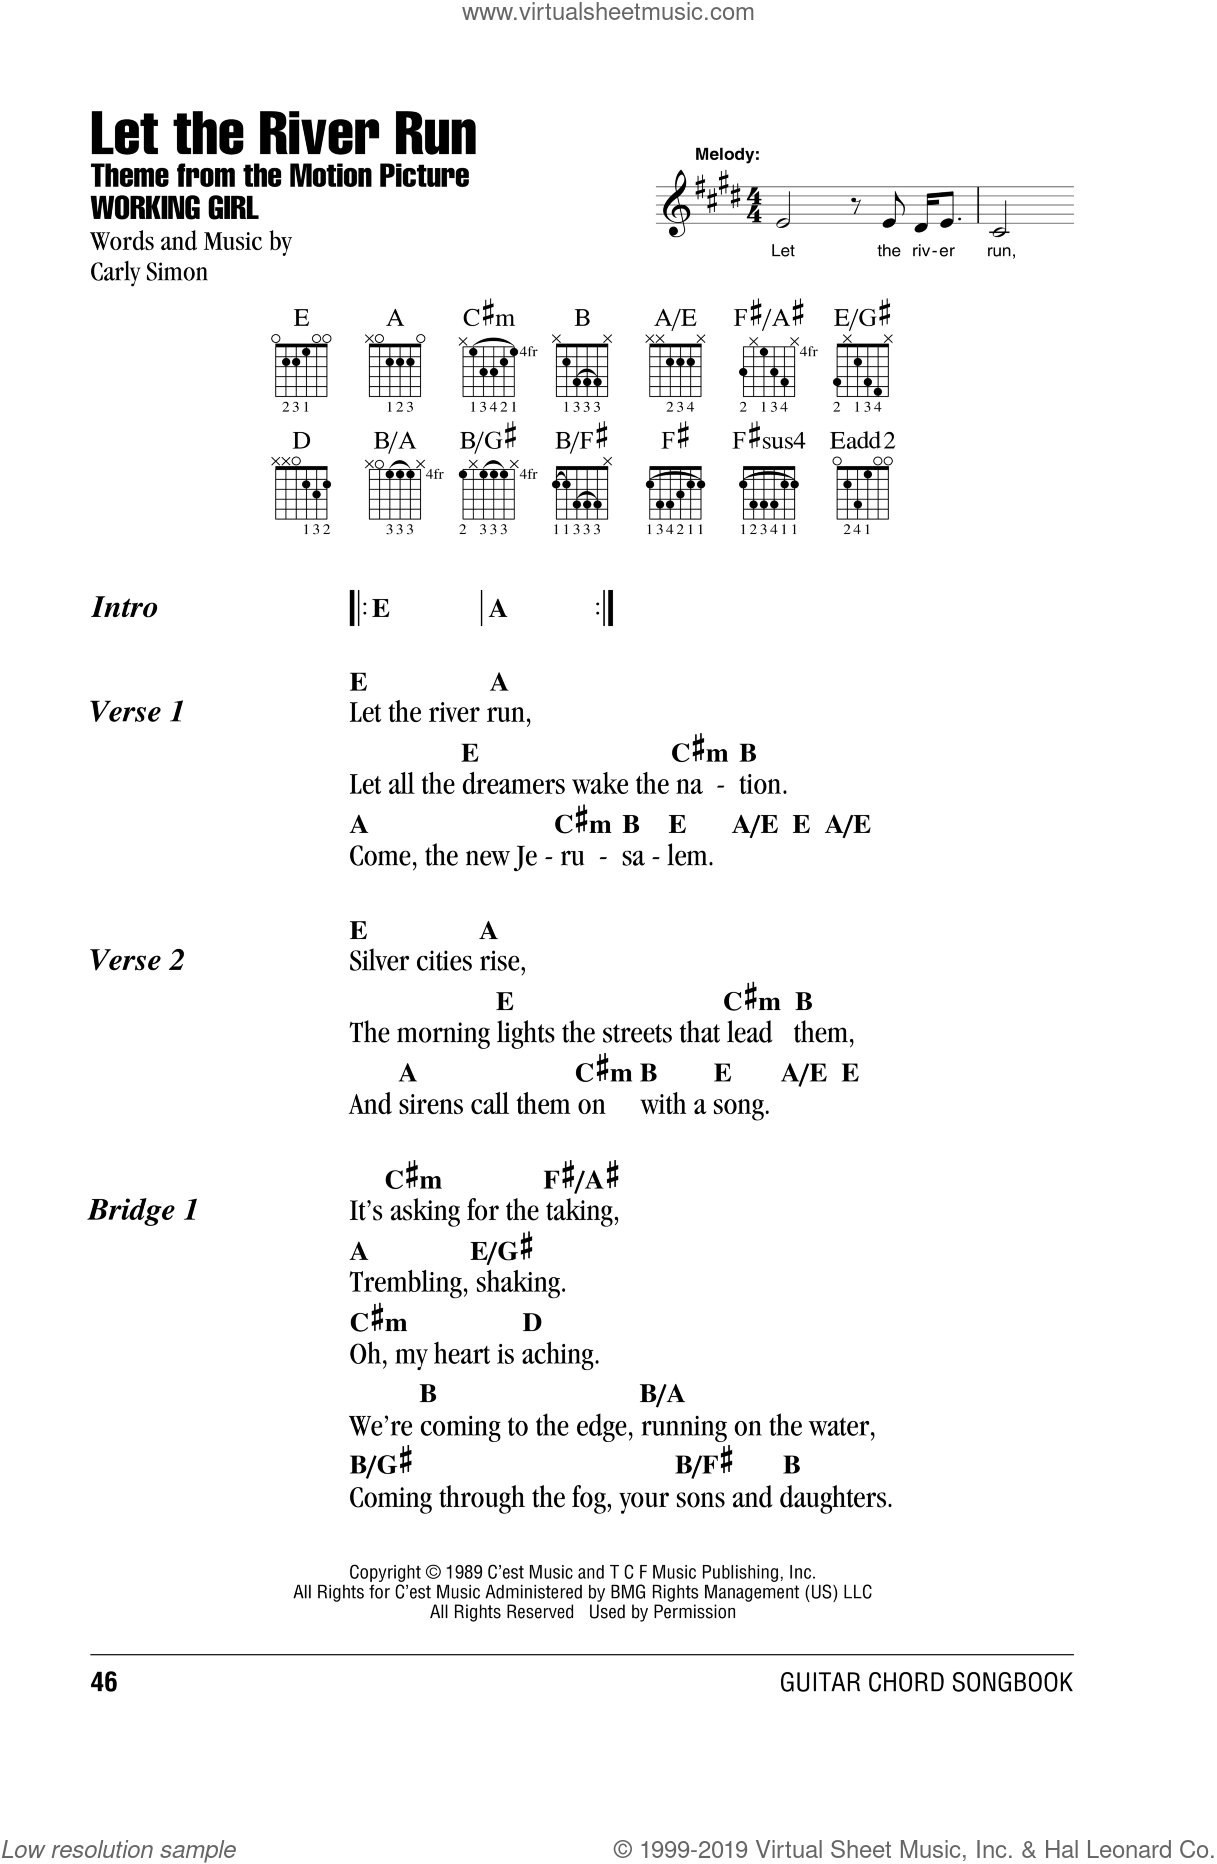 Let The River Run Sheet Music For Guitar Chords By Carly Simon Intermediate: River Run Sheet Music At Alzheimers-prions.com